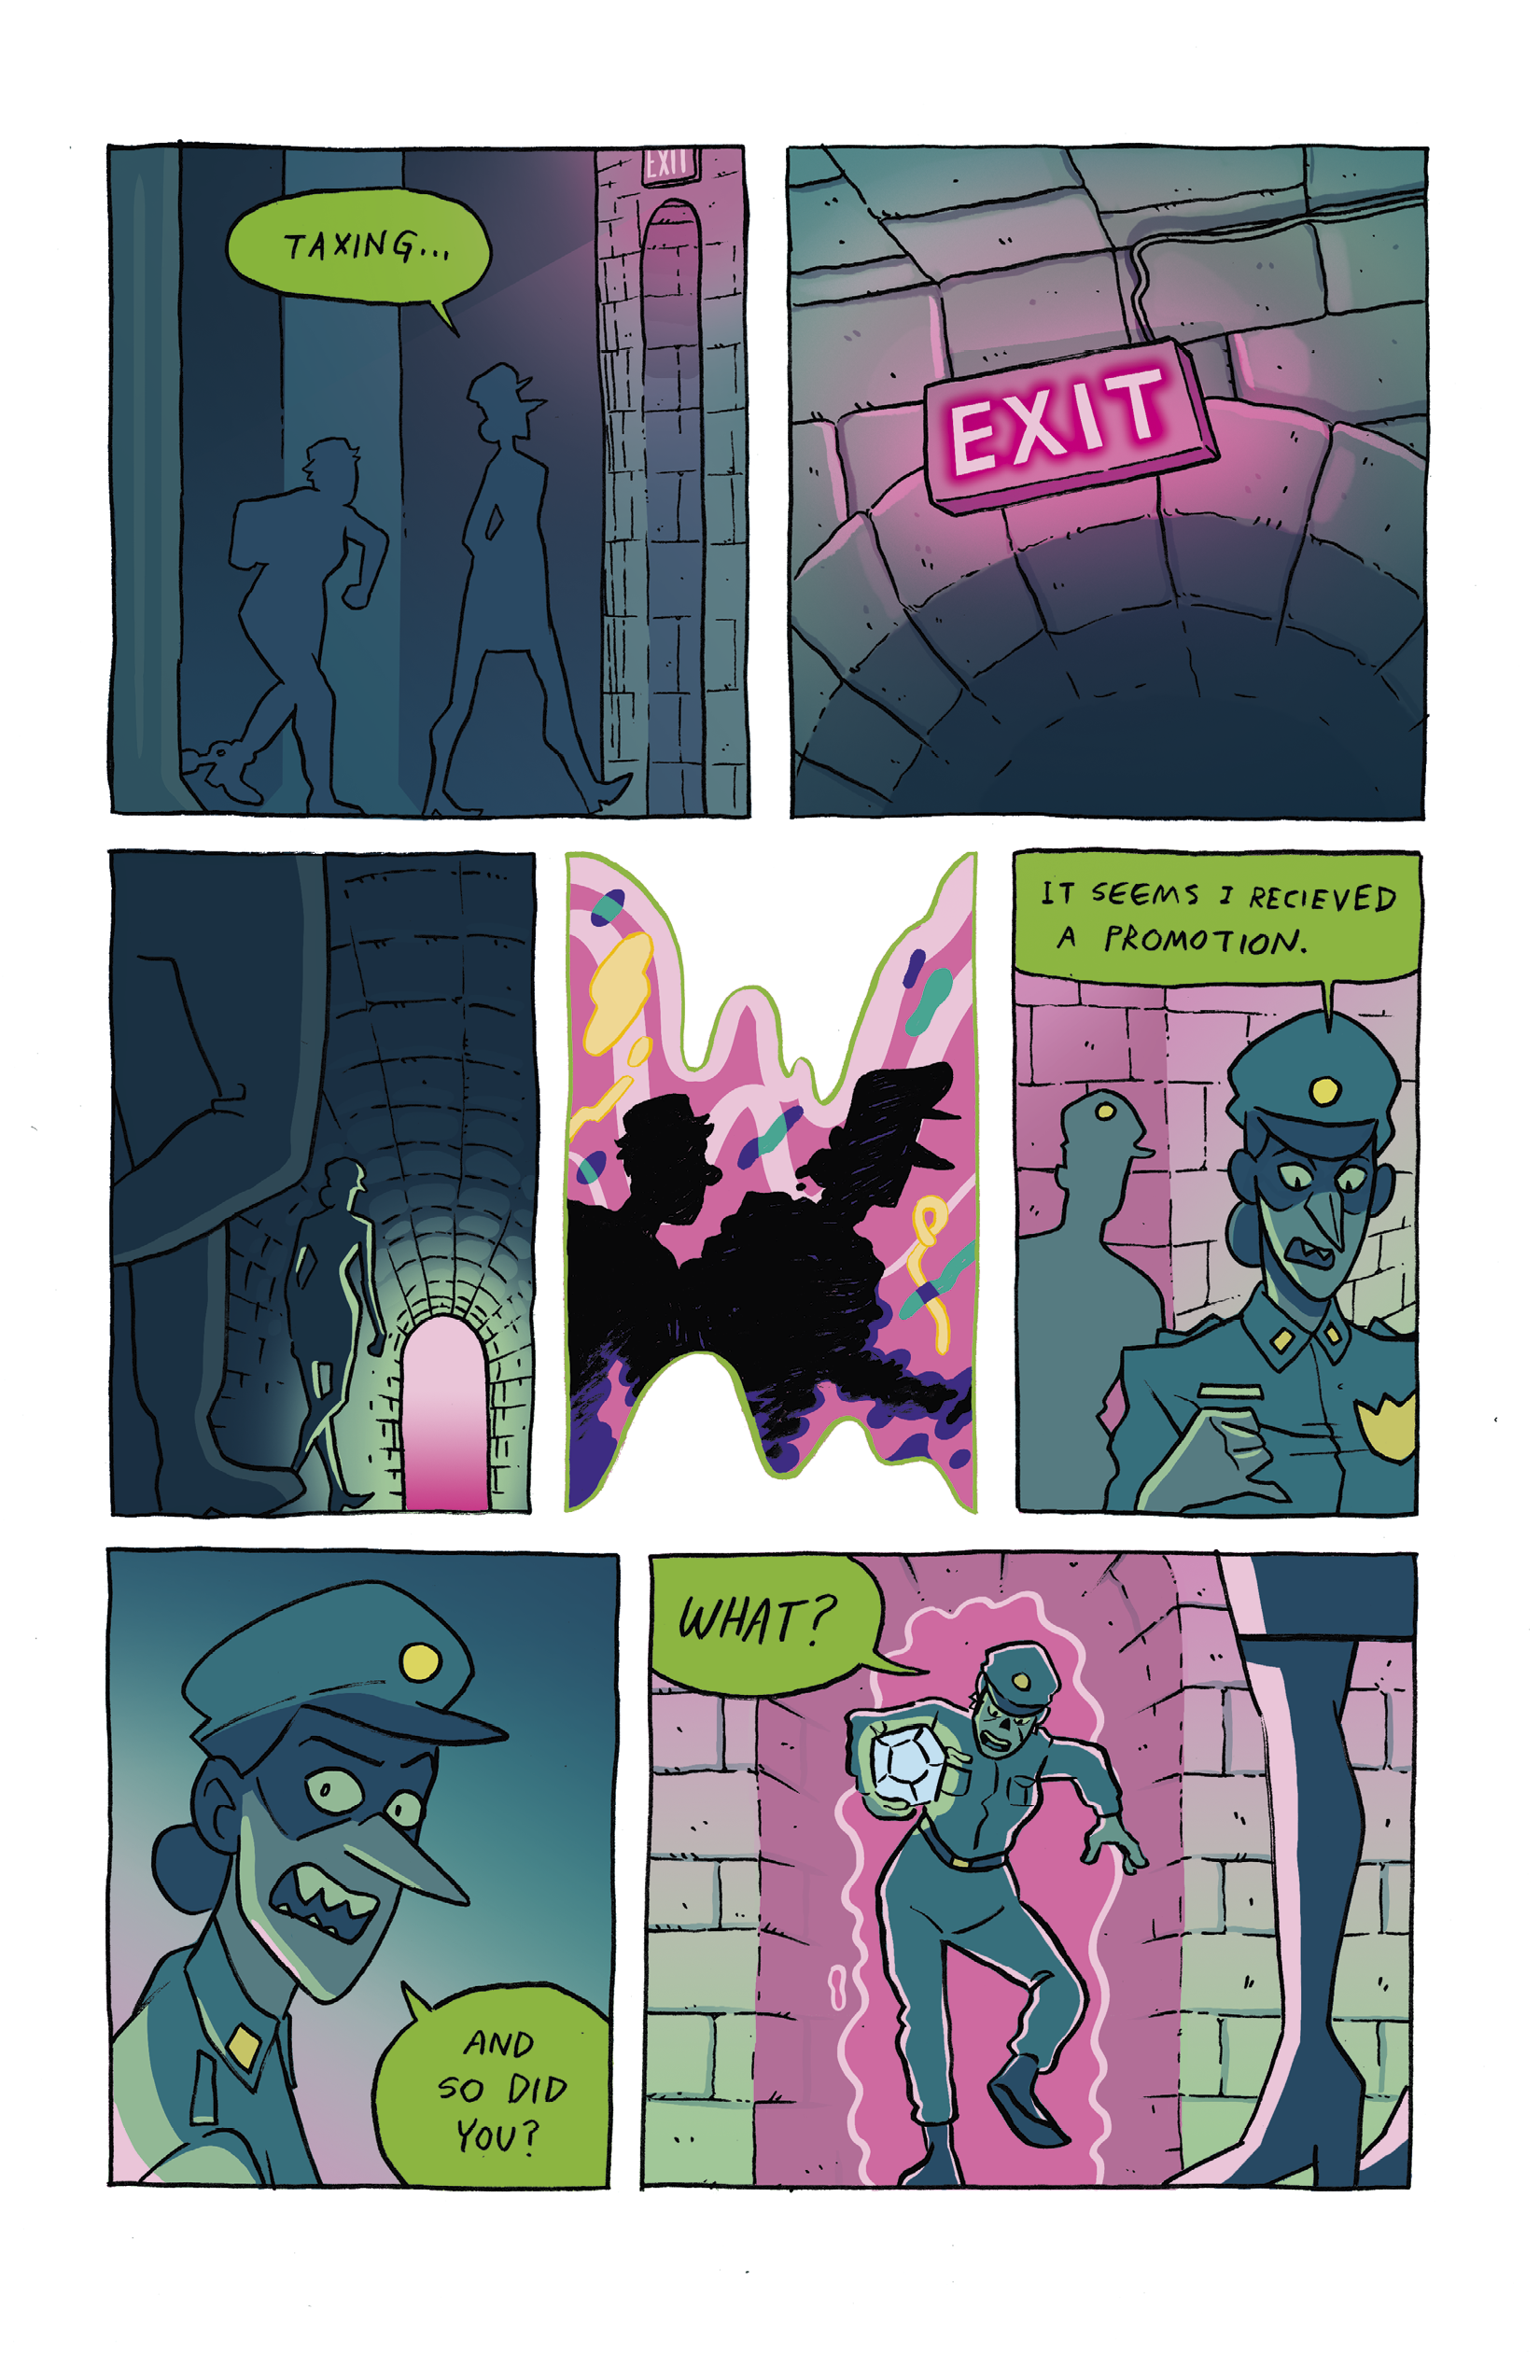 METANOIA_final_001_single_pages15.png